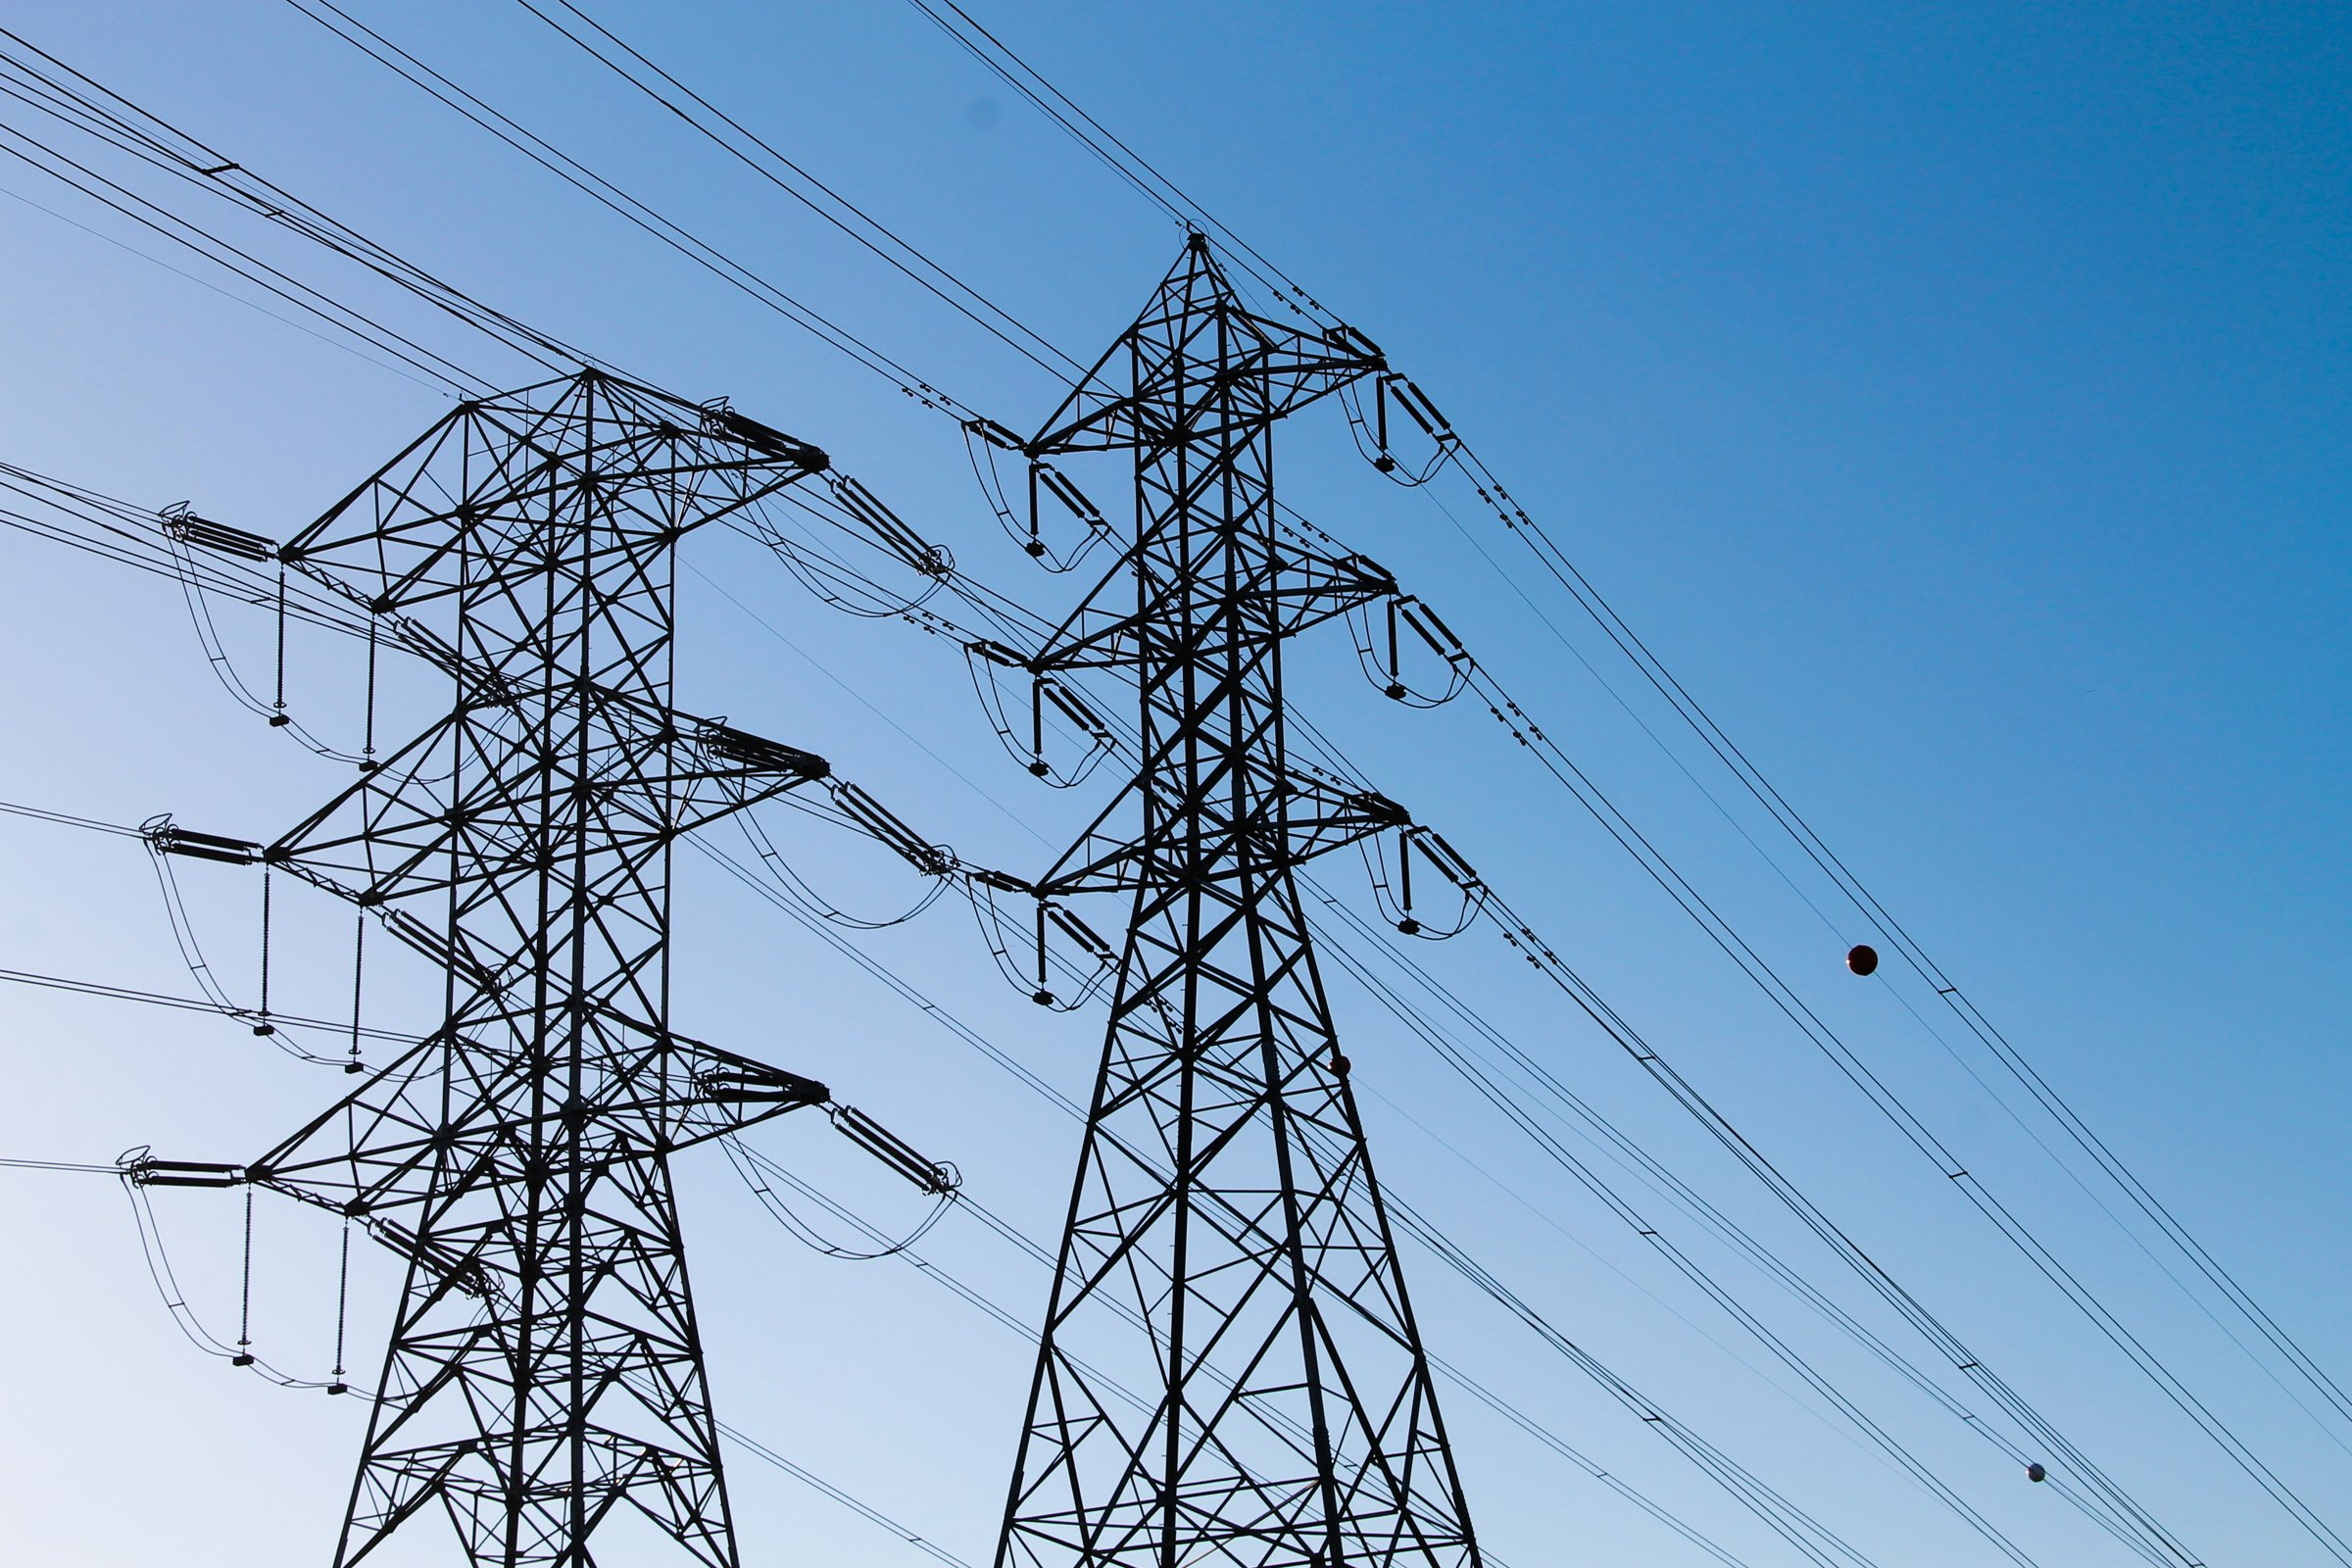 Electric Towers with Power Lines in Blue Sky » Good Stock Photos